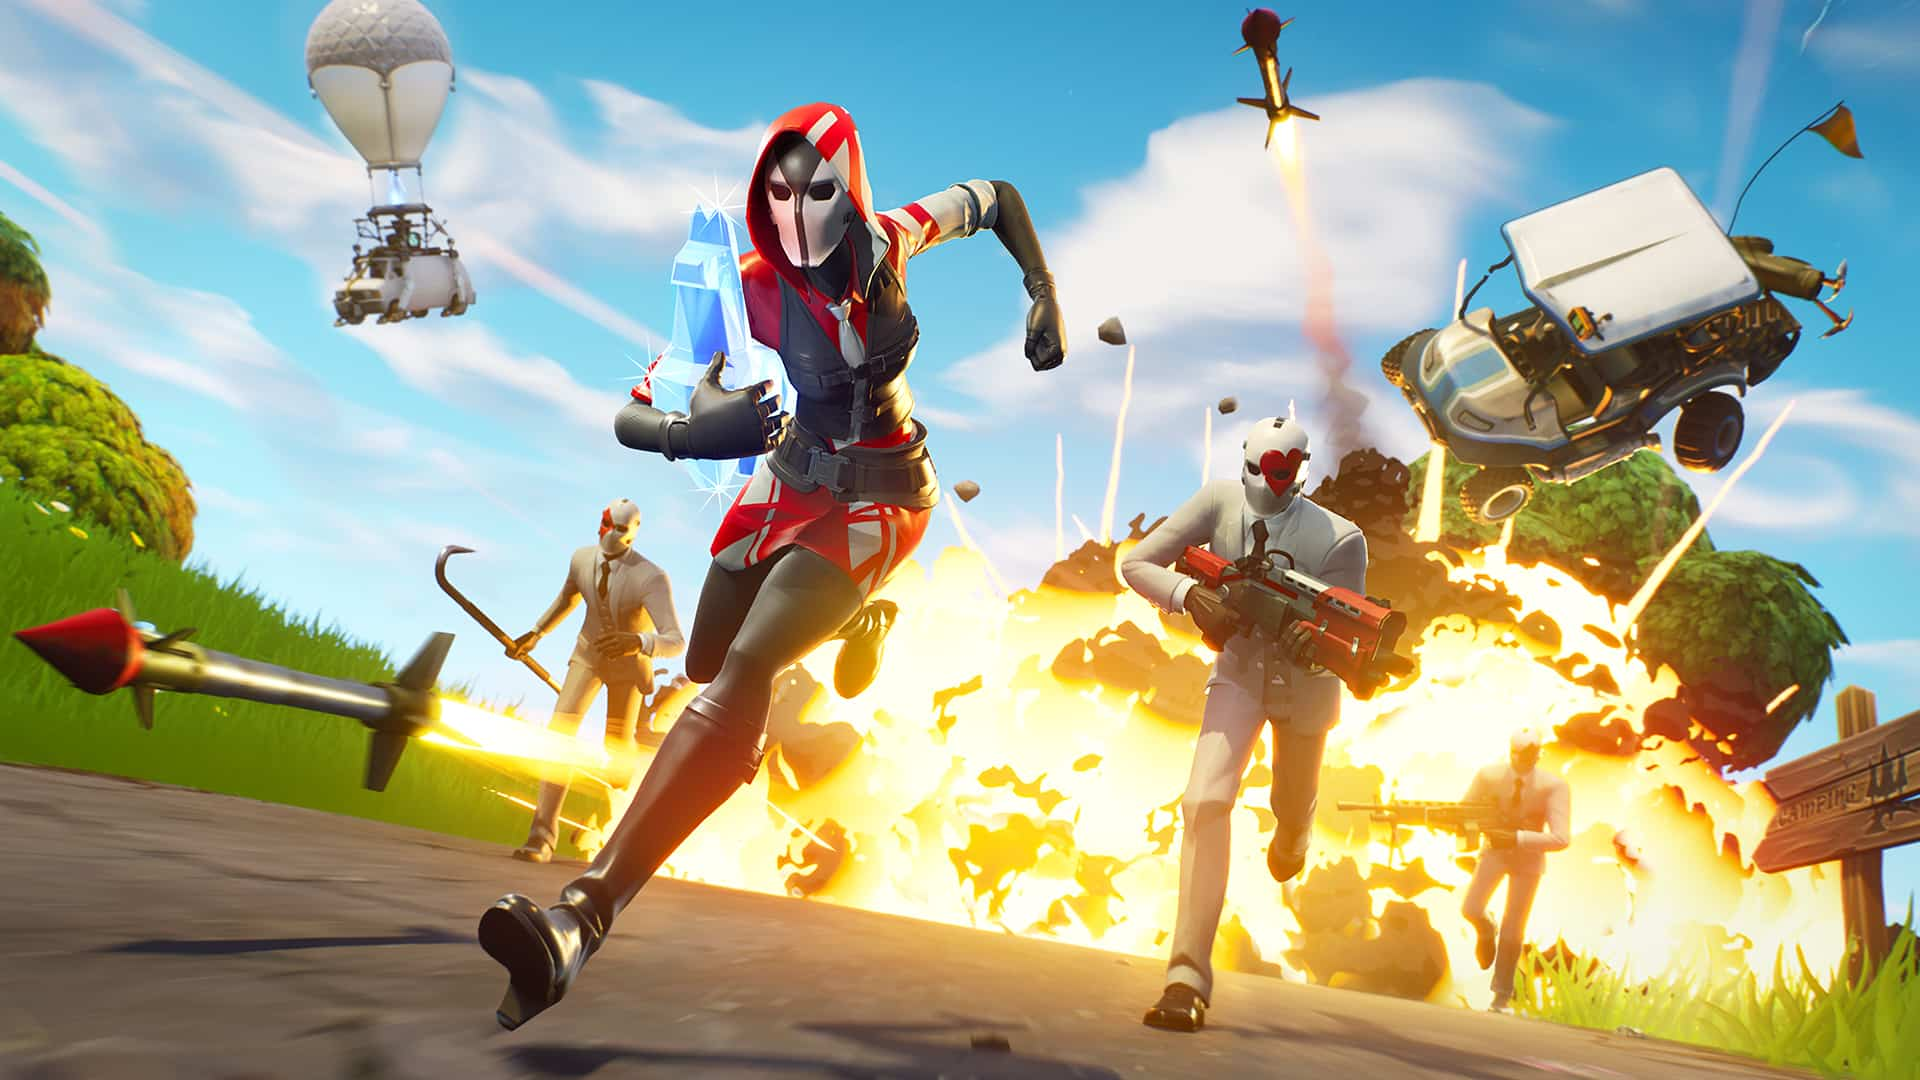 Epic Games v. Apple trial court case Fortnite Tart Tycoon Epic Games credibility is lost, deceit is damaging to a court case app store